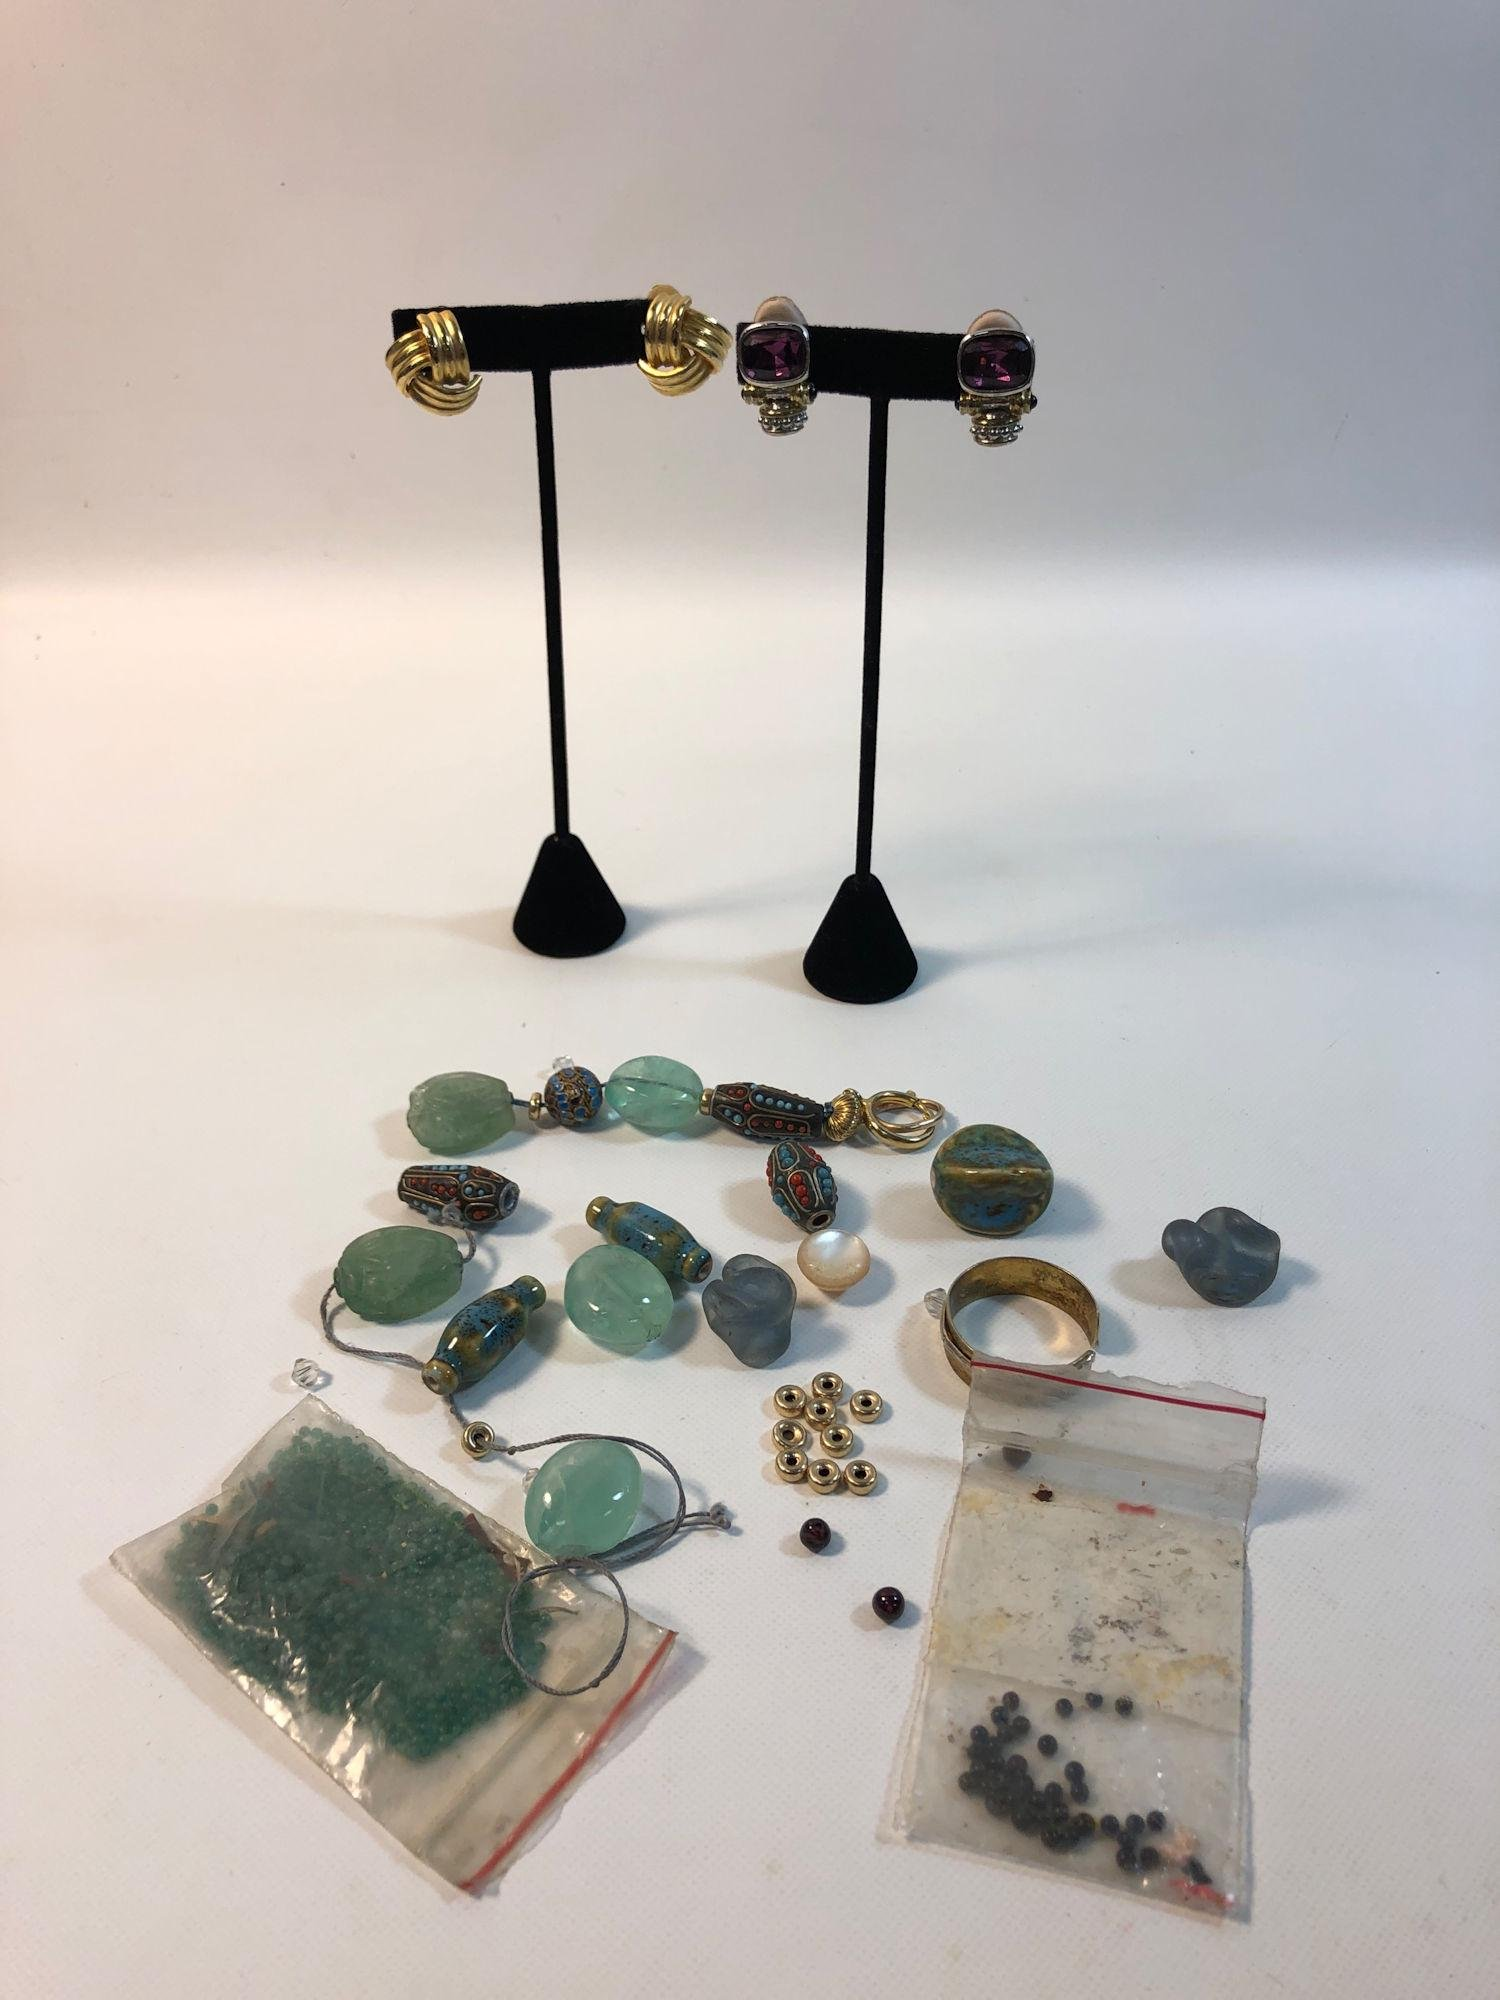 MISCELLANEOUS JEWELRY MAKING SUPPLIES